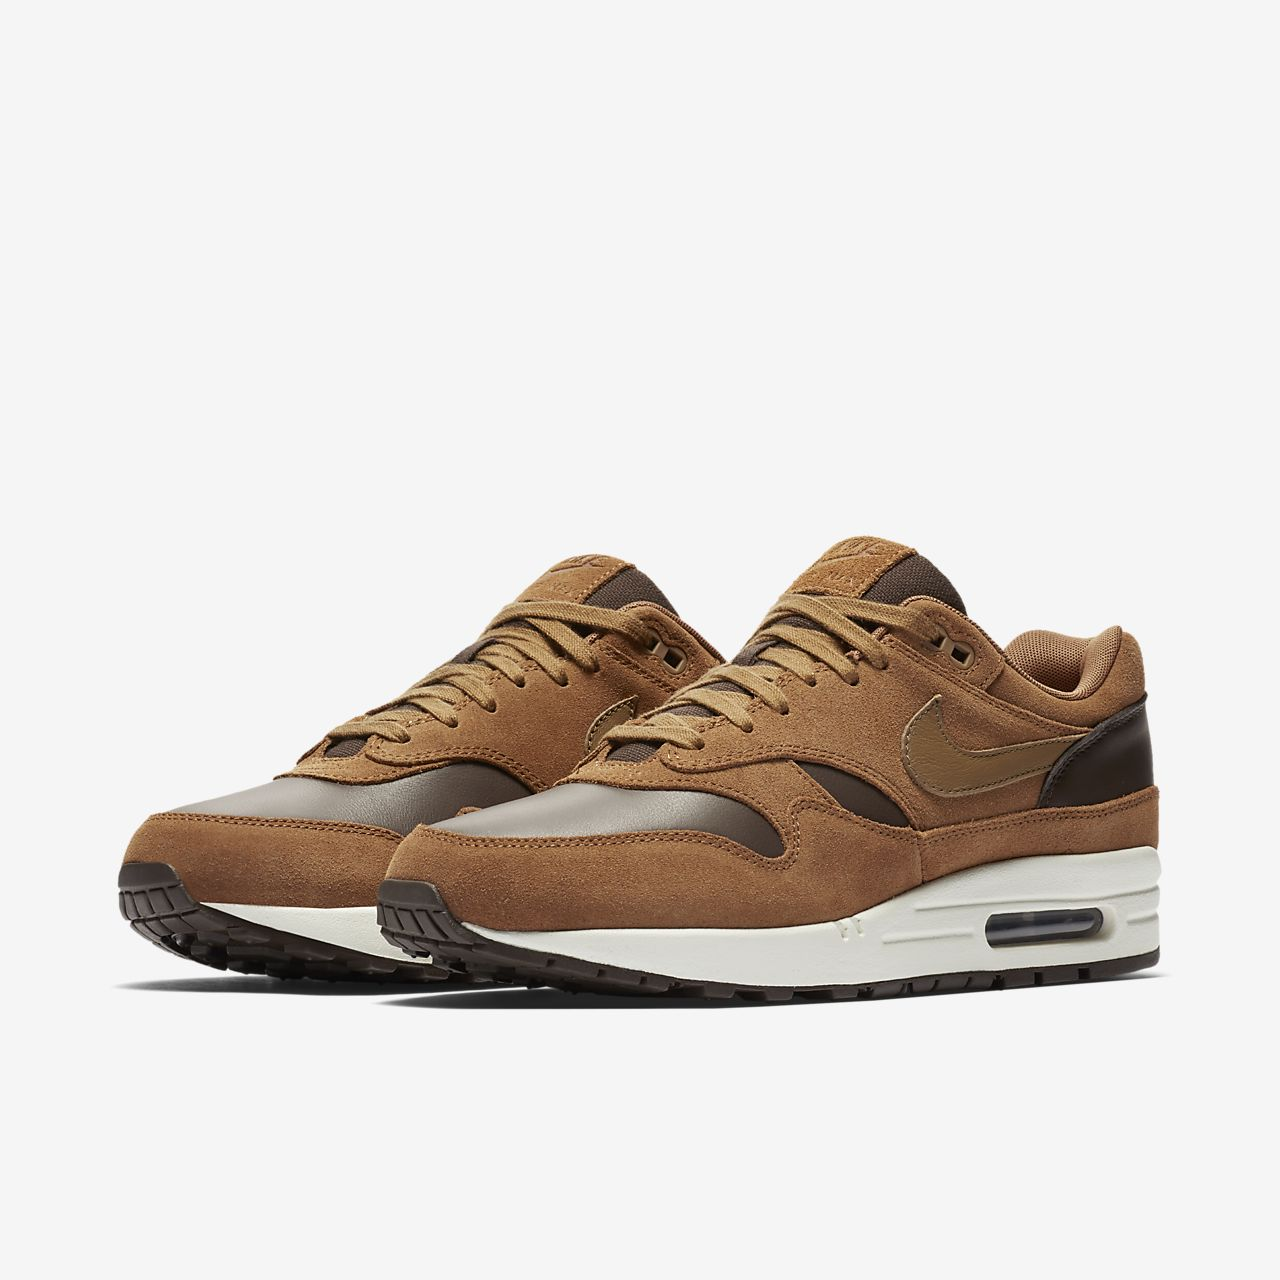 nike air max 1 premium men's shoe nz